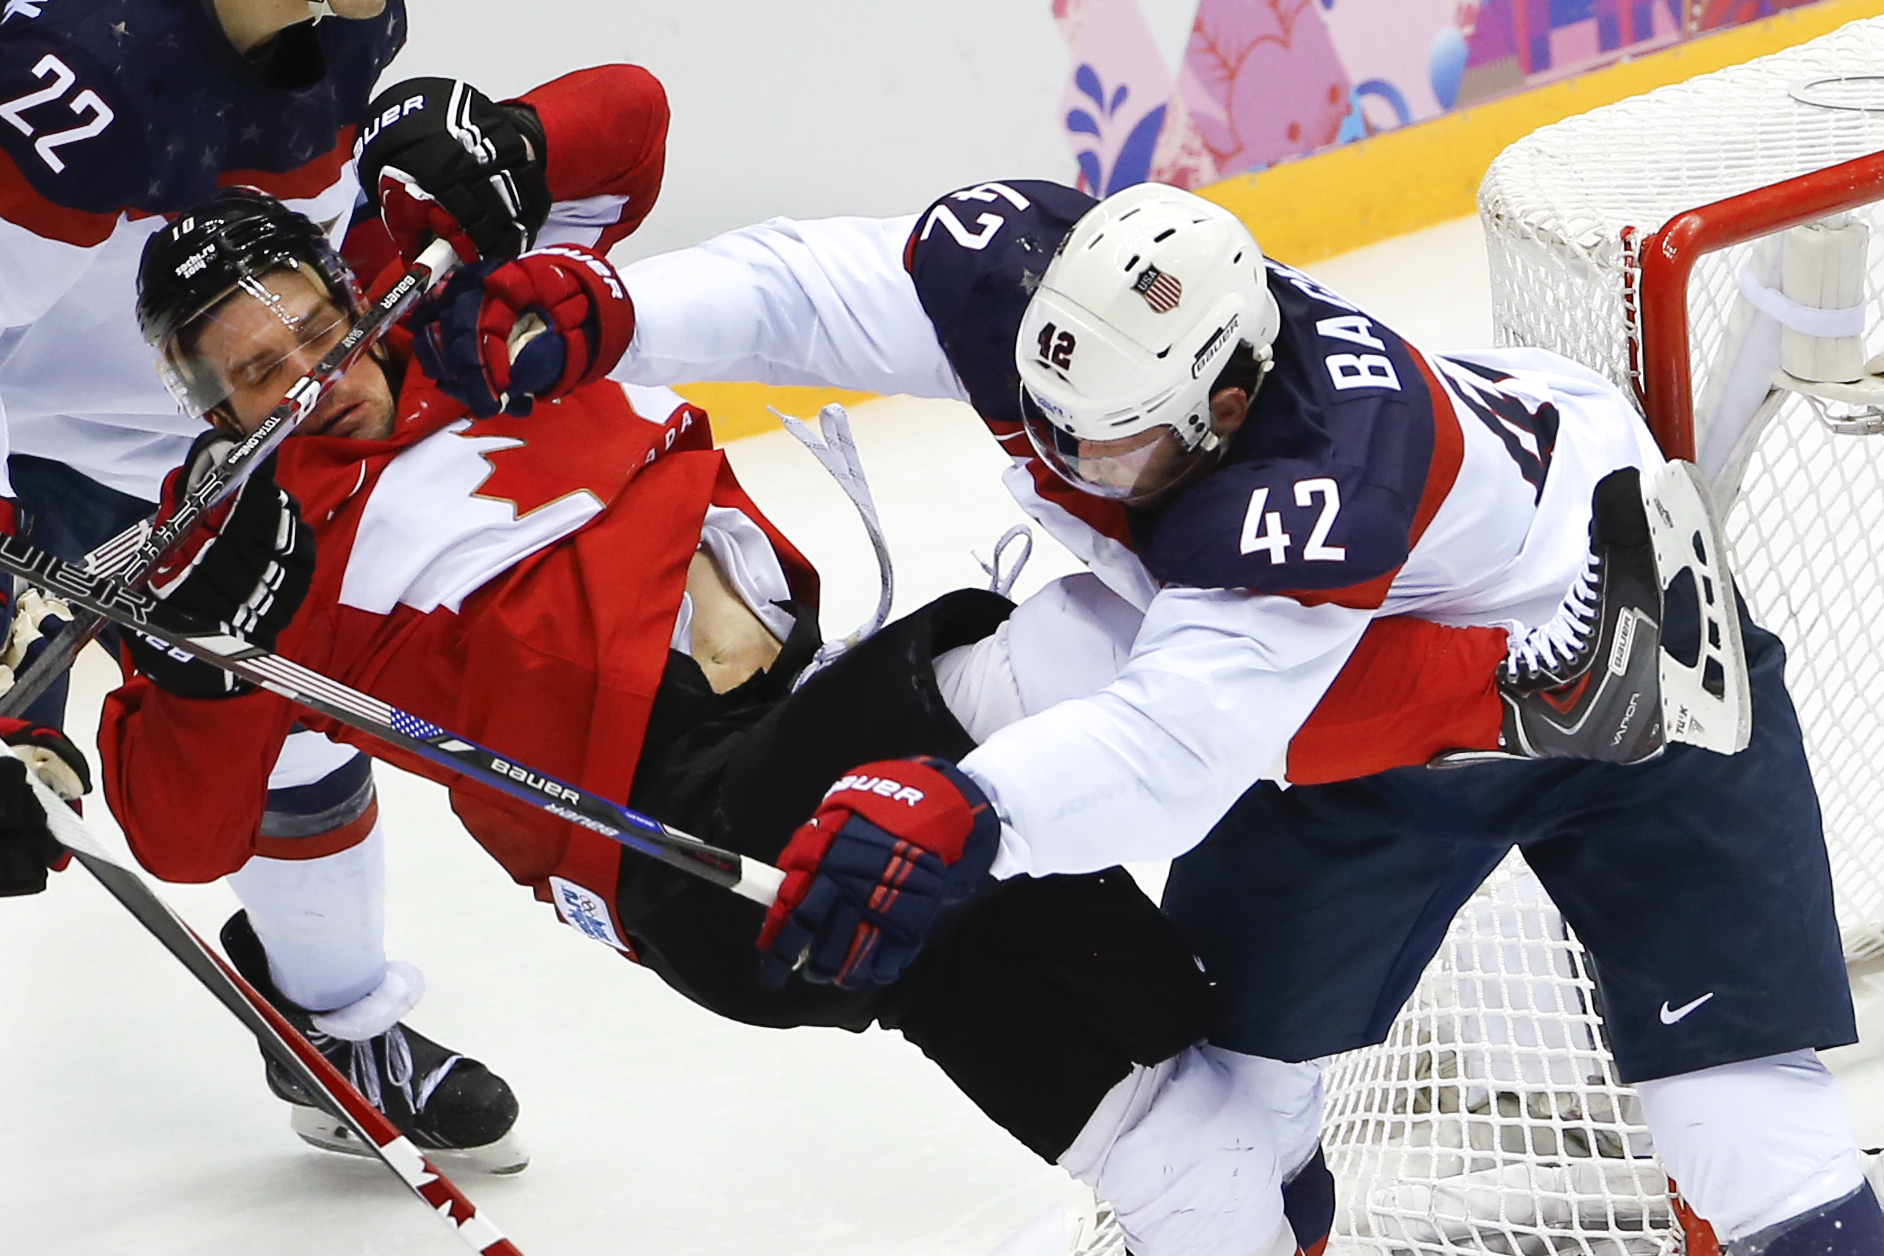 USA forward David Backes mixes it up with Canada forward Patrick Sharp during the second period of the men's semifinal ice hockey game at the 2014 Winter Olympics, Friday, Feb. 21, 2014, in Sochi, Russia. (AP Photo/Matt Slocum)